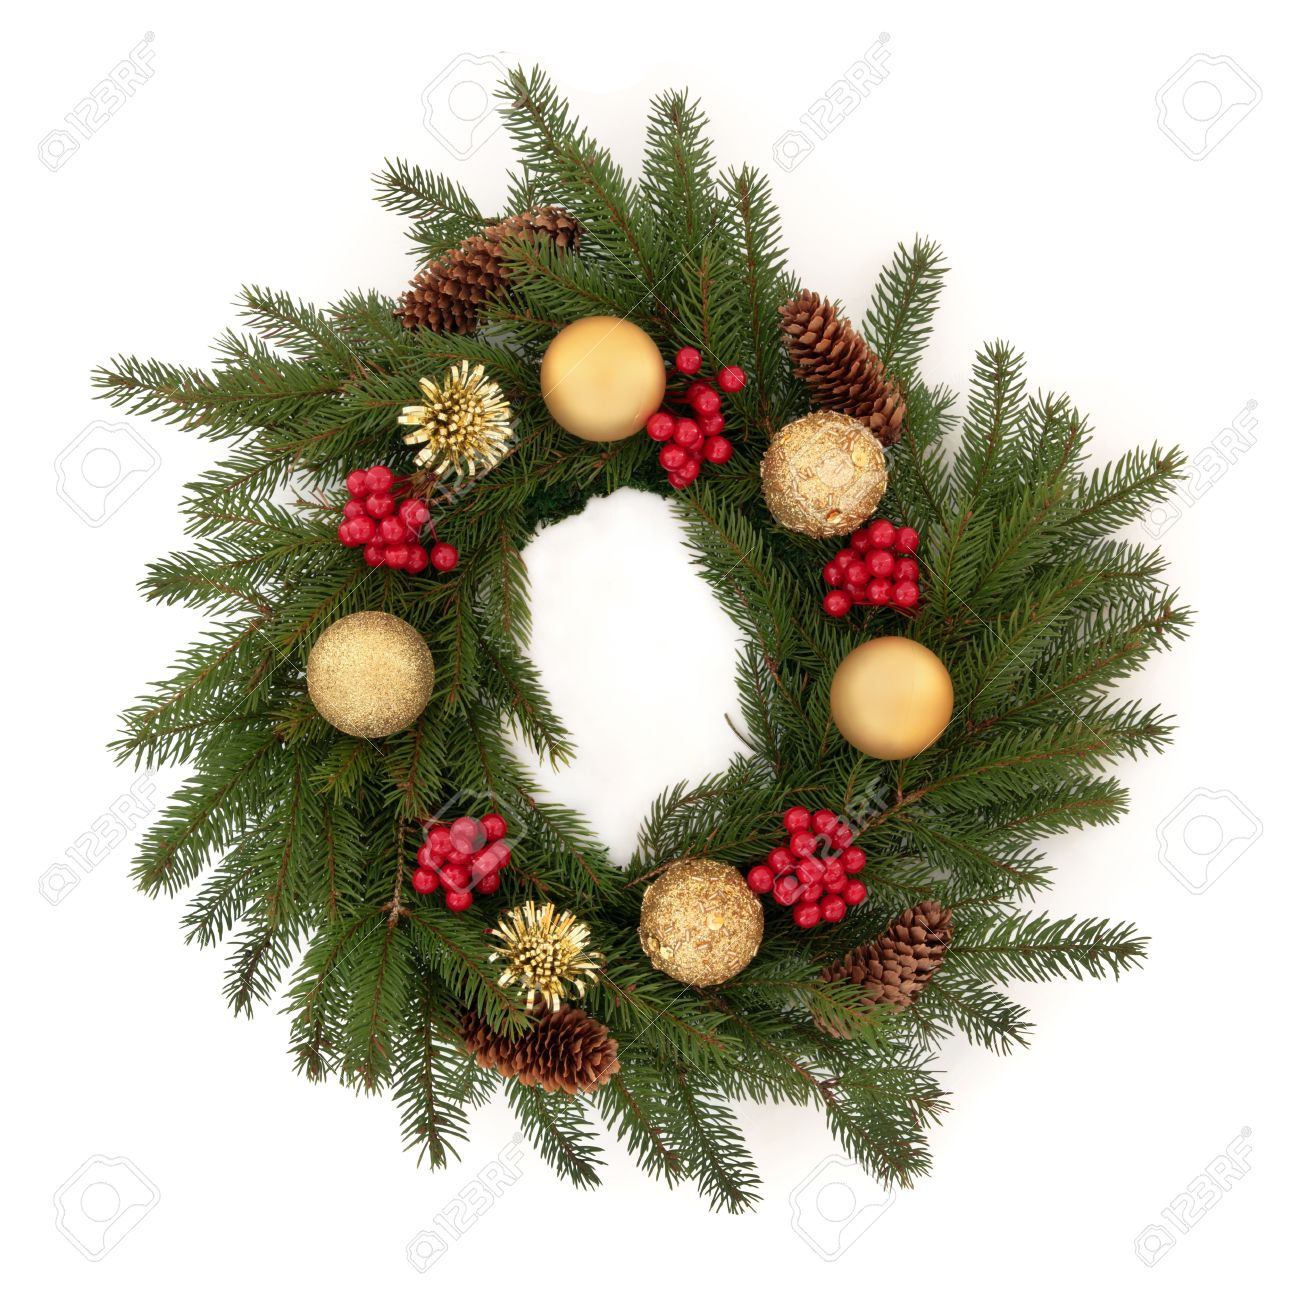 1ed47fa3183c ... isolated over white background. Christmas wreath of pine fir with red  holly berry clusters, pine cones and golden bauble